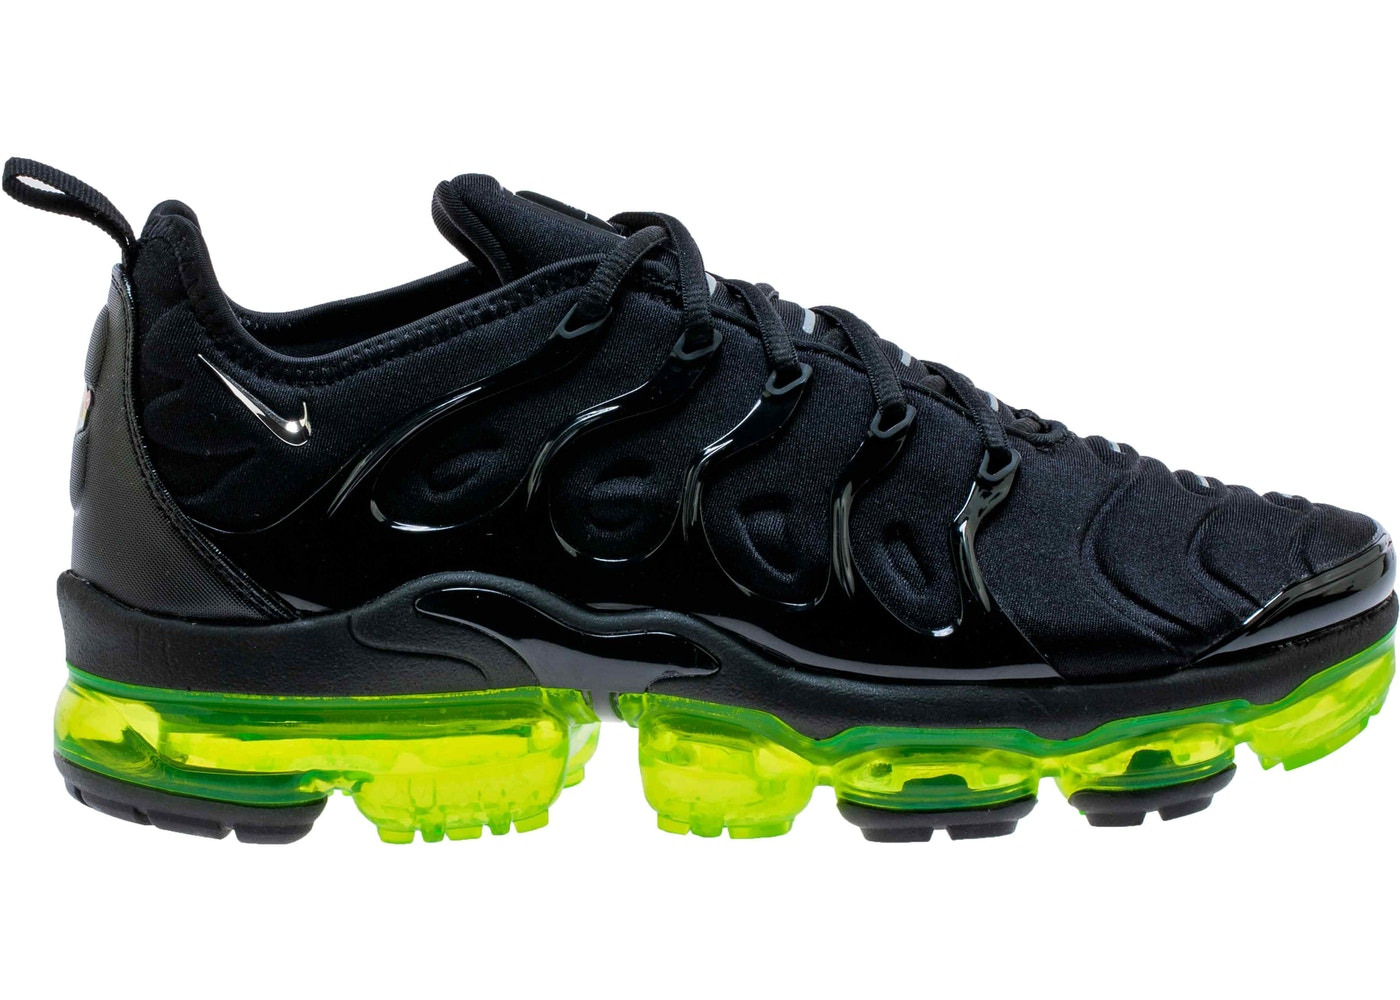 Air VaporMax Plus Black Volt Sole - 924453-015 f9e43afcc